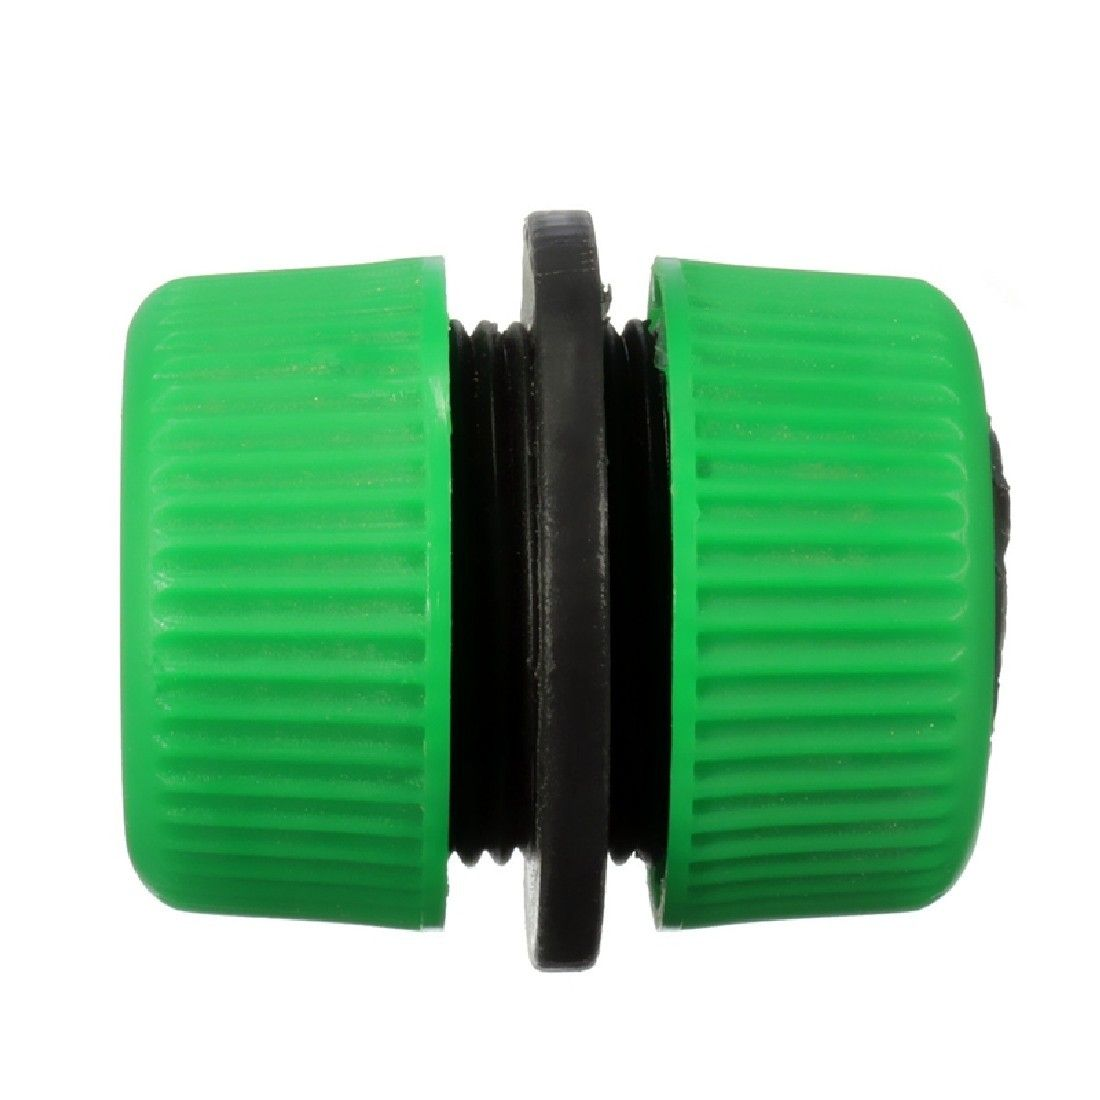 New 1 2 Garden Water Hose Connector Pipe Quick Connectors Joining Mender Repair Leaking Joiner Connector Adapter Garden Supplies Water Hose Water Garden